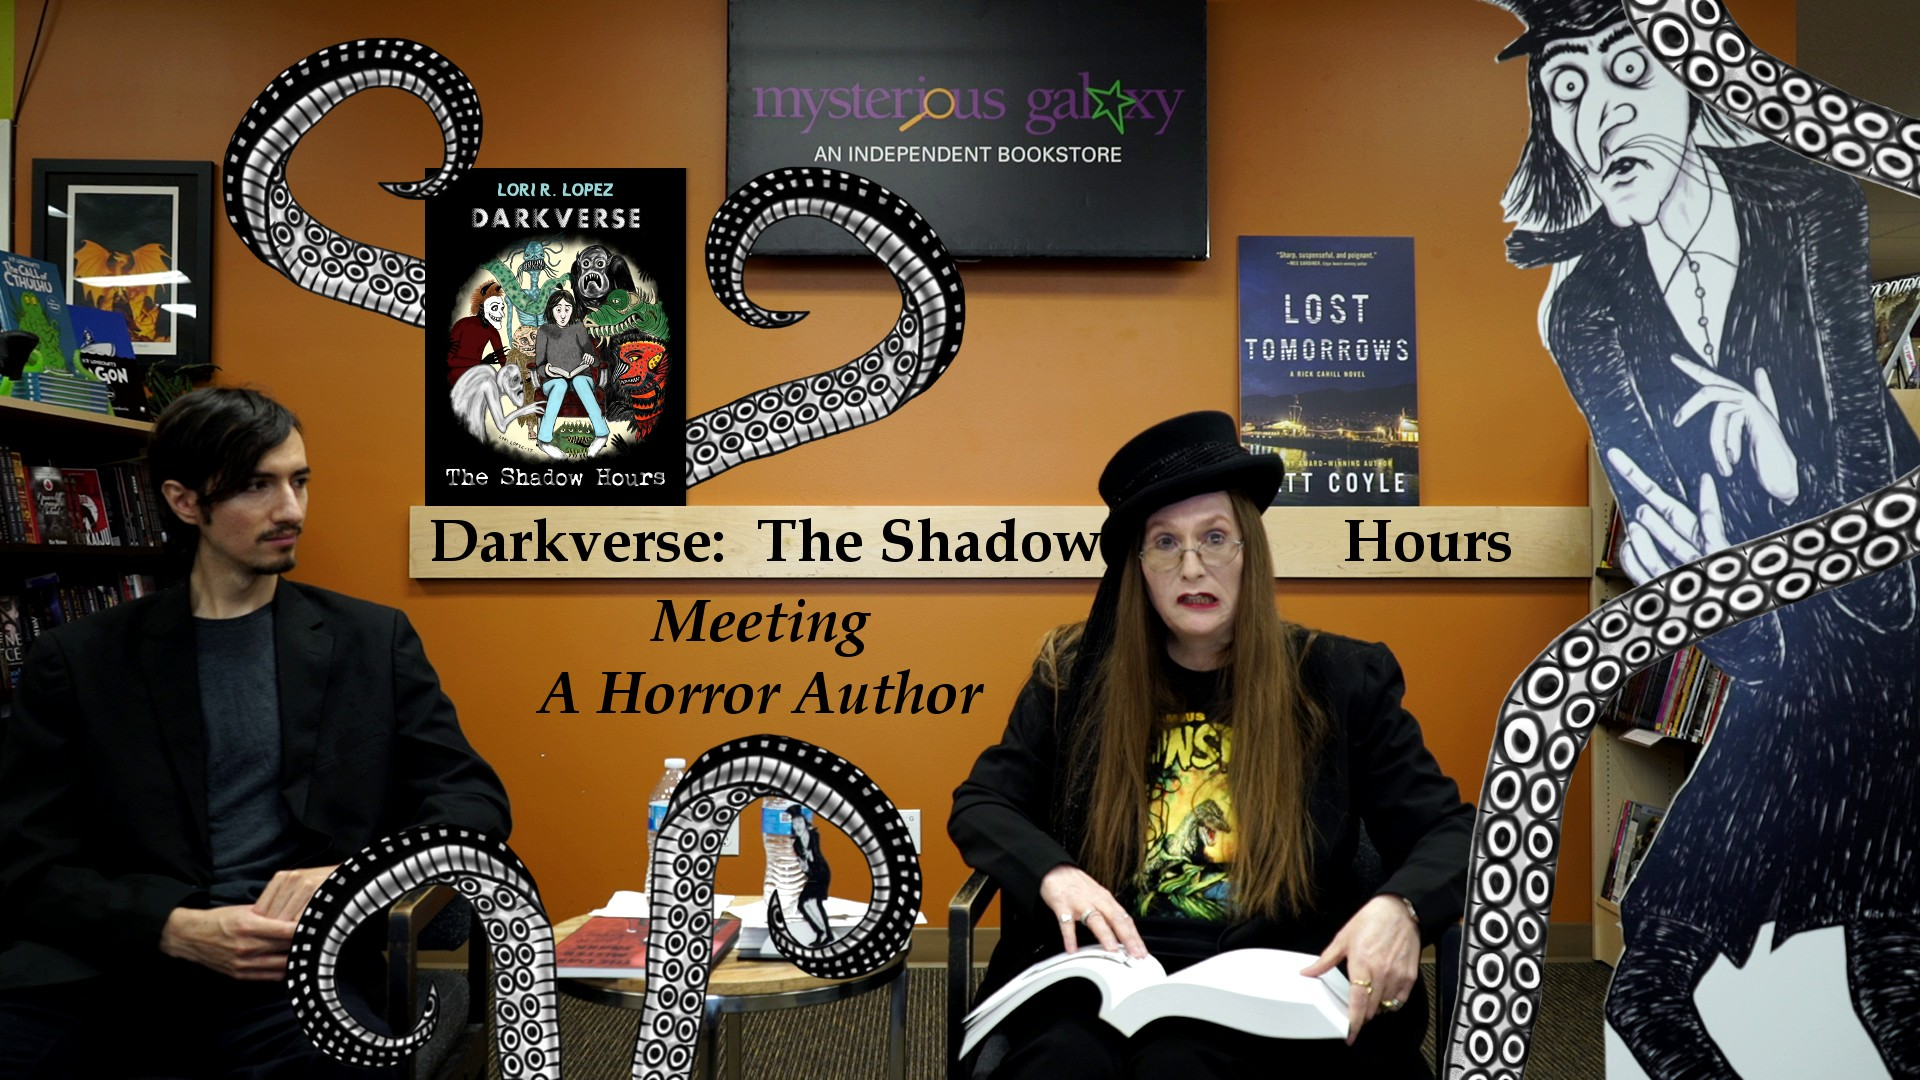 Lori R. Lopez Reading And Presentation At Mysterious Galaxy Bookstore With Darkverse Tentacles